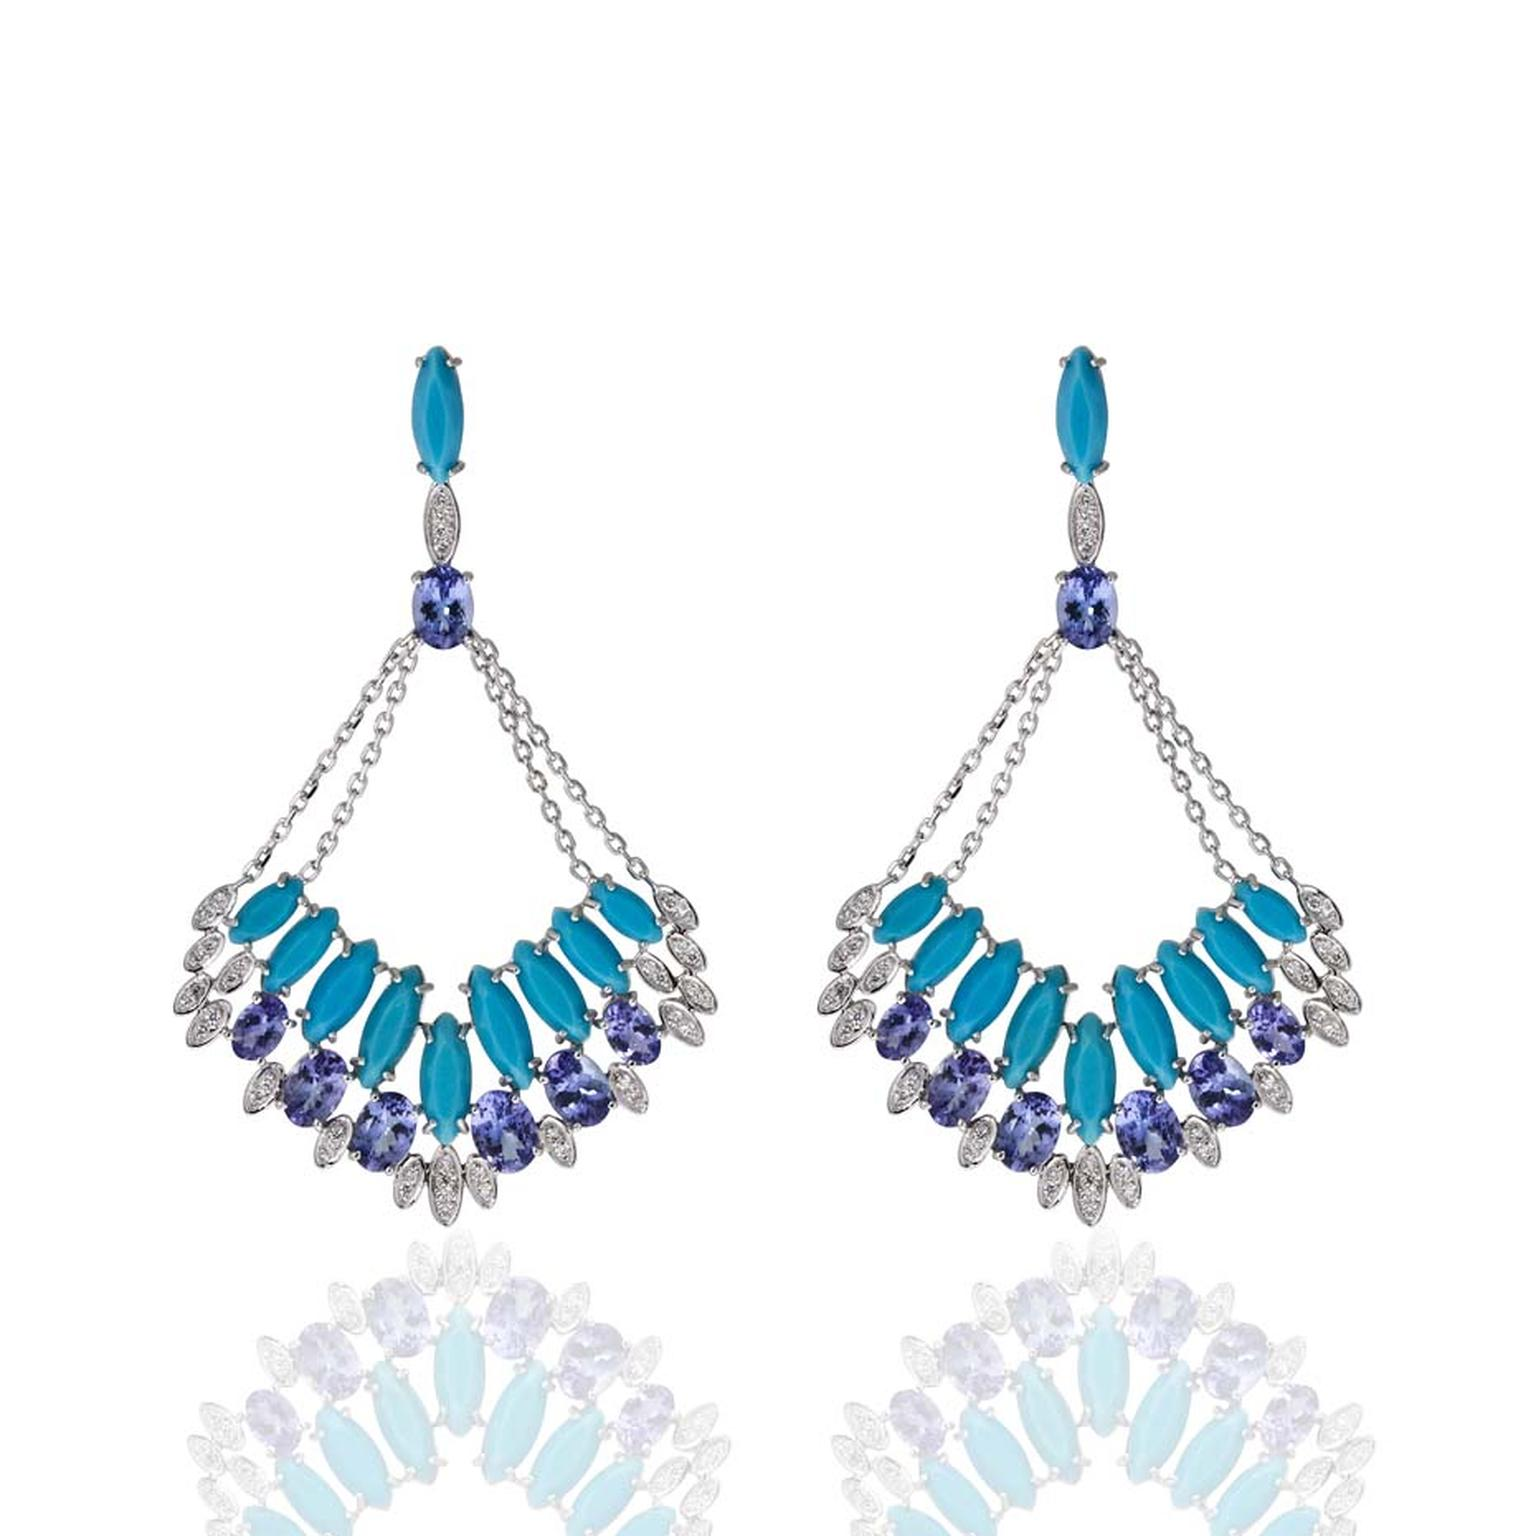 Flor de Pedra Carla Amorim earrings in white gold with turquoise, tanzanite and white diamonds ($12,980).